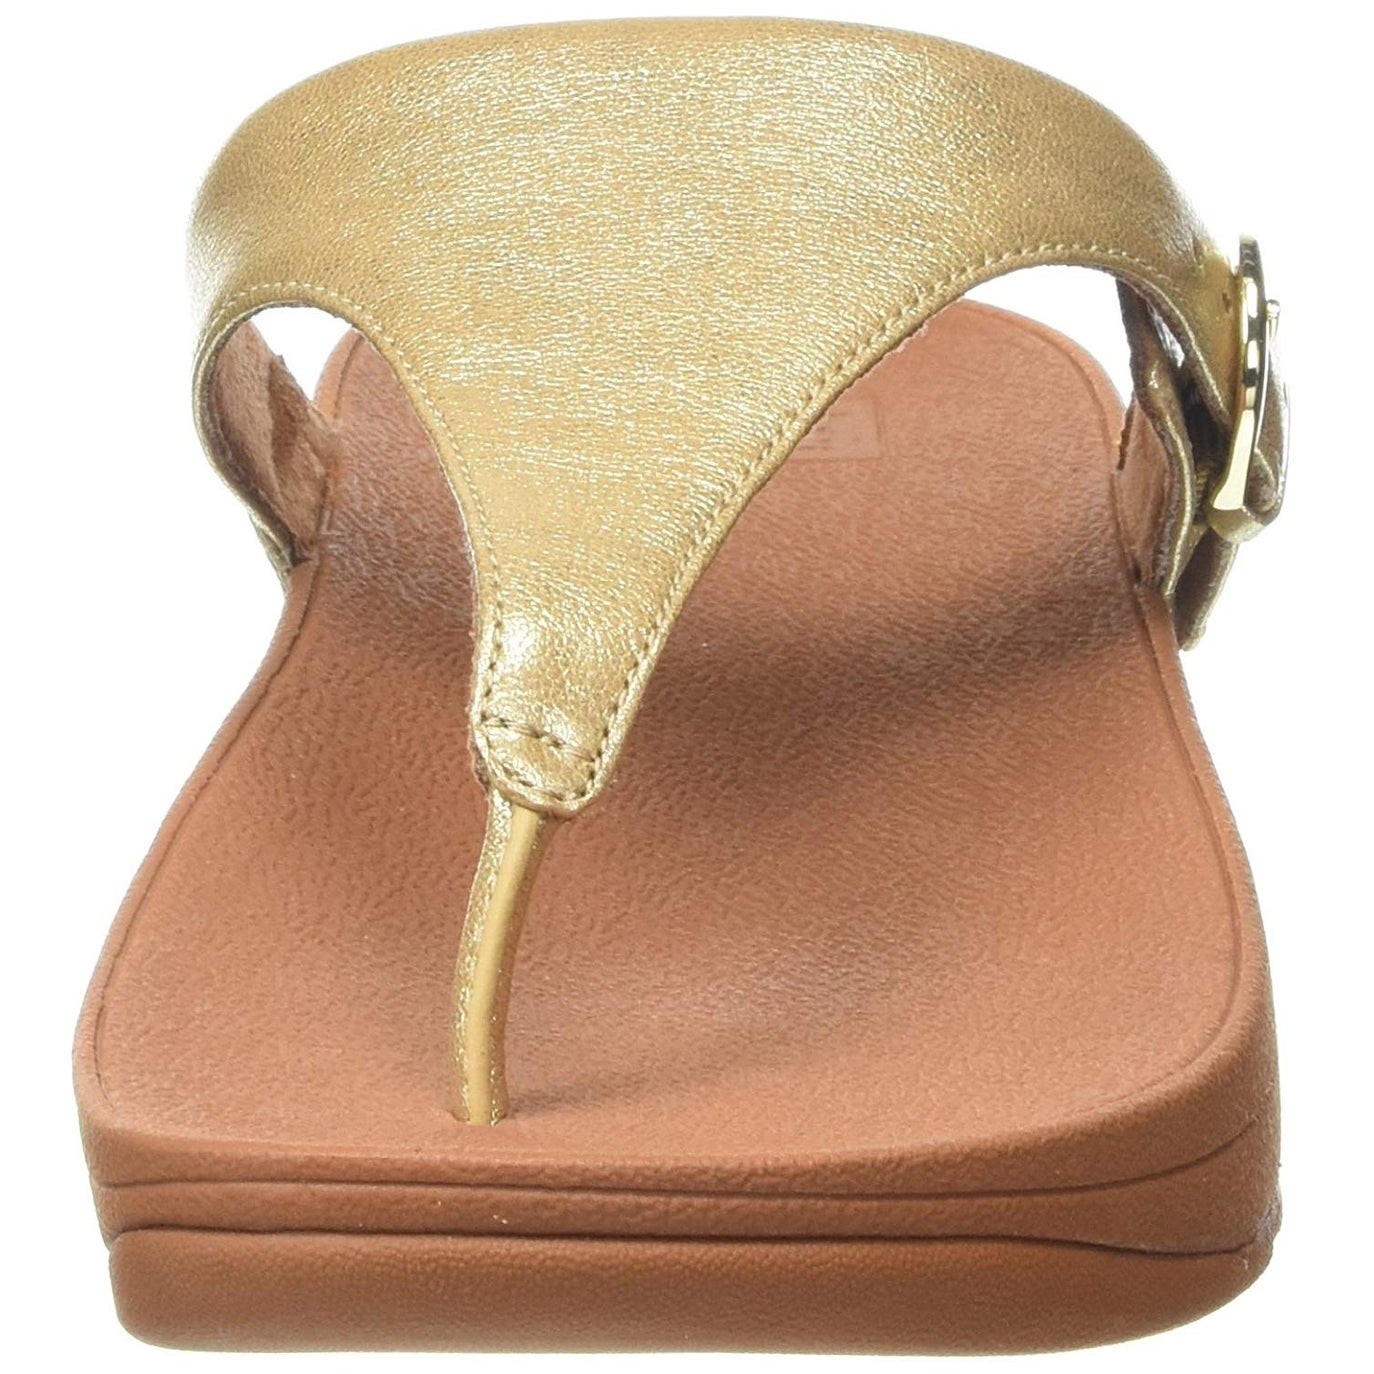 2c38f0076b2e7 Shop FitFlop Women's The Skinny Leather Toe-Thong Sandal - Free Shipping On  Orders Over $45 - Overstock - 26291467